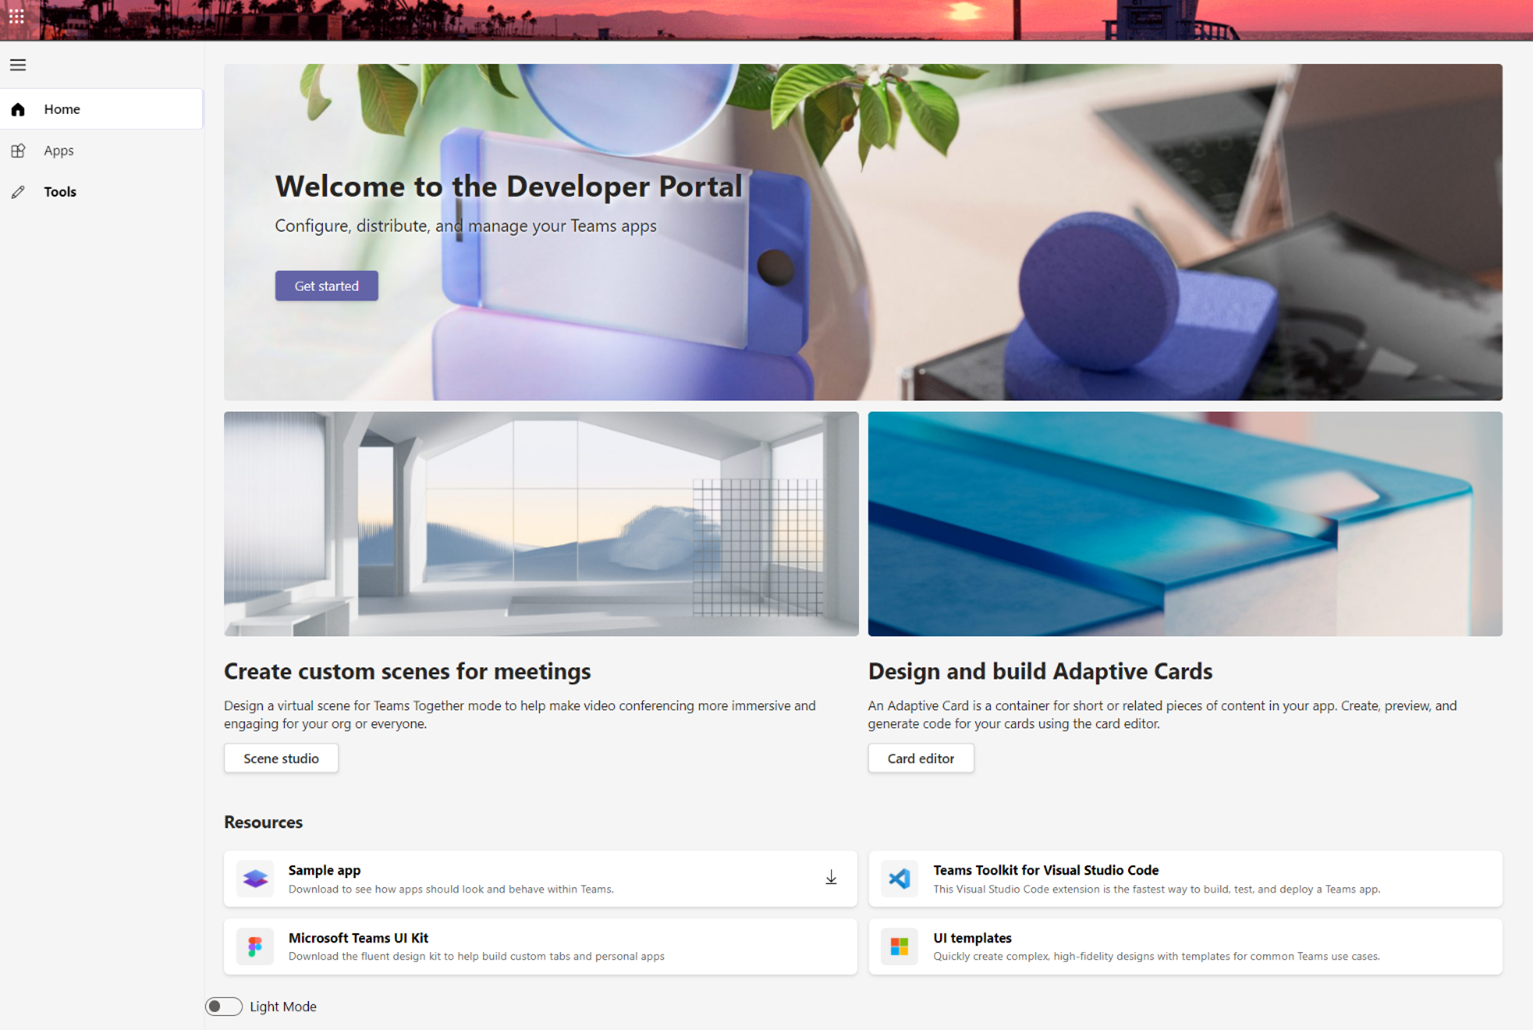 Visual showing the home page of the Developer Portal.